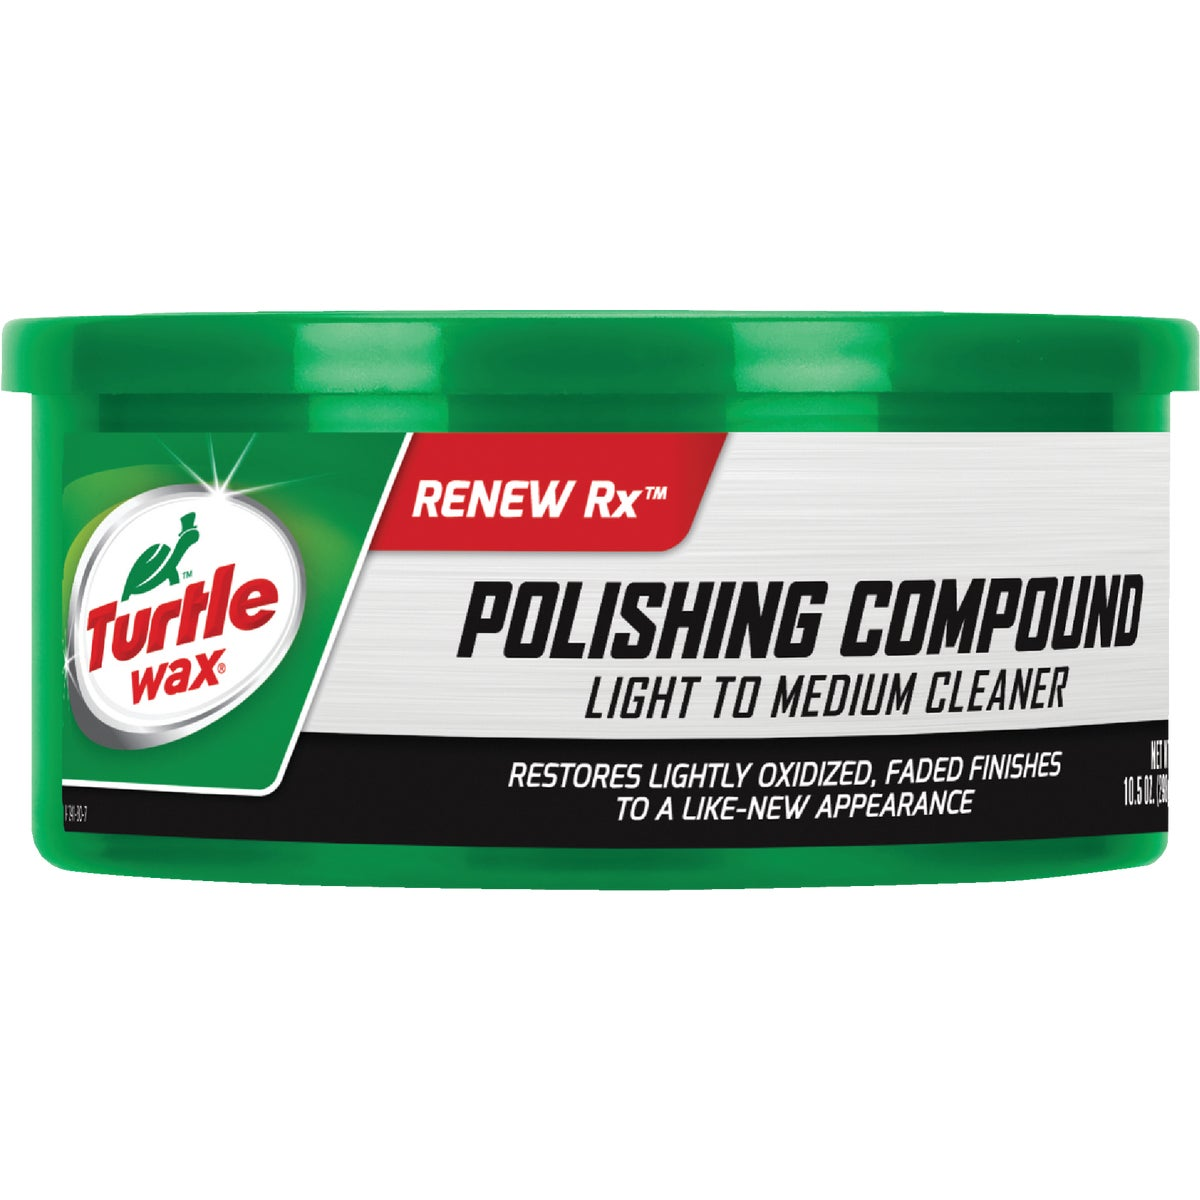 10.5OZPOLISHING COMPOUND